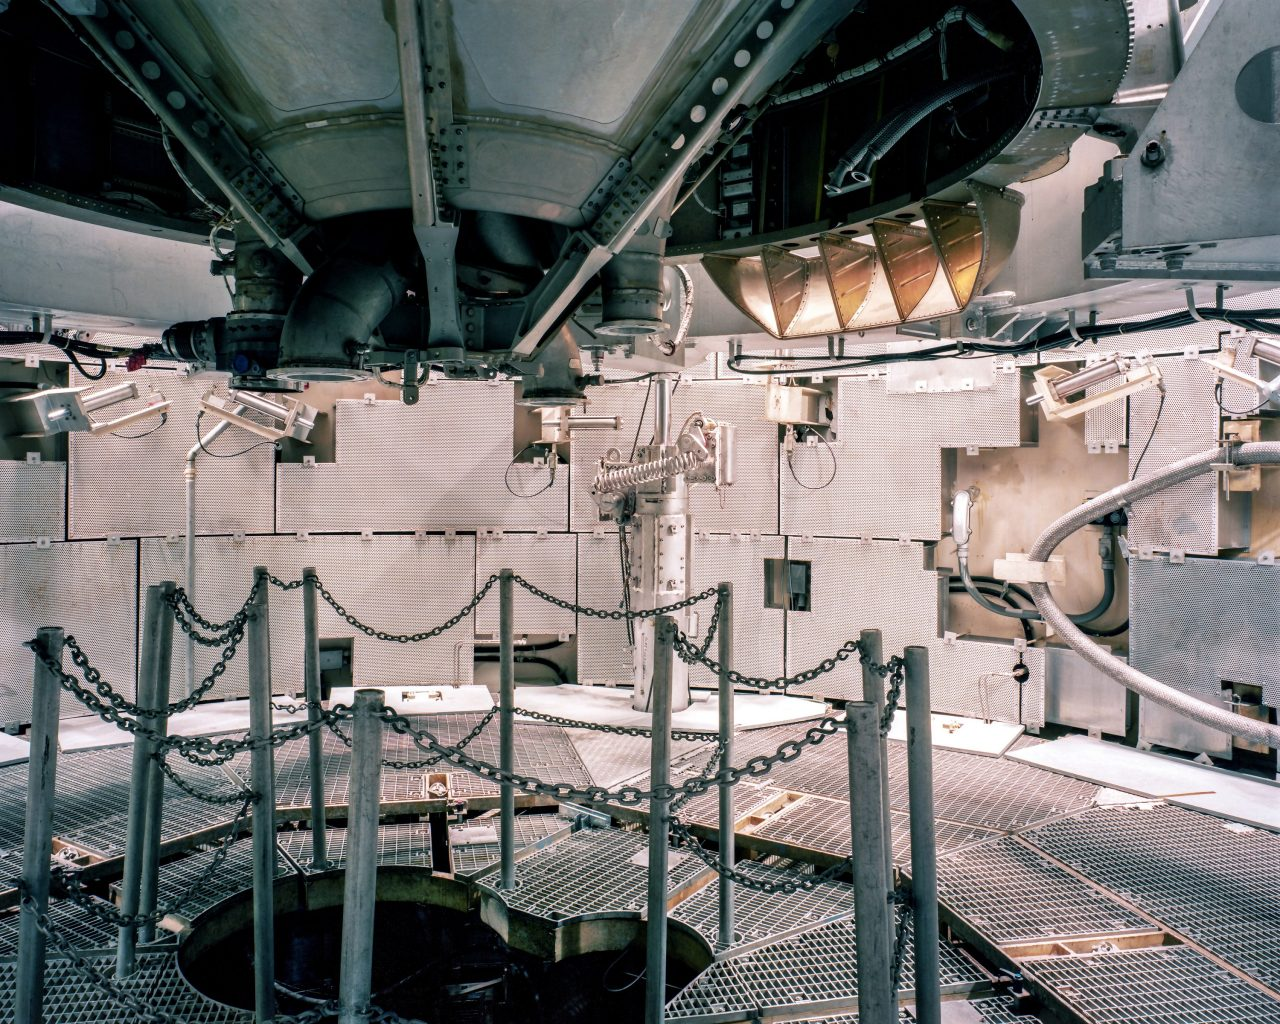 First-stage engine of a Titan II intercontinental ballistic missile as seen